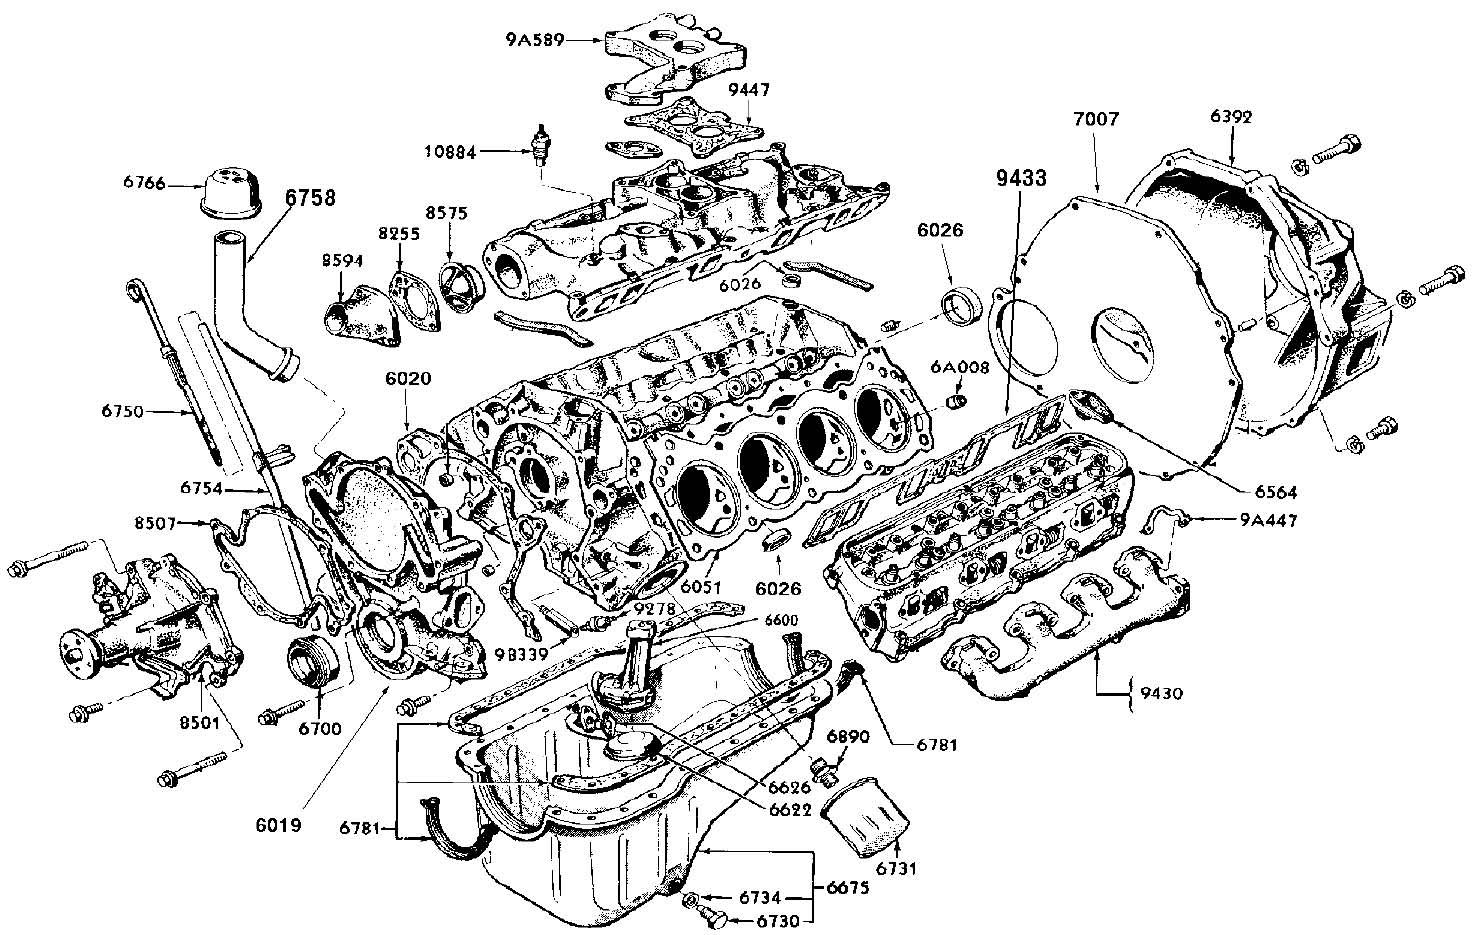 1984 ford 302 engine diagram - wiring diagram export known-bitter -  known-bitter.congressosifo2018.it  congressosifo2018.it